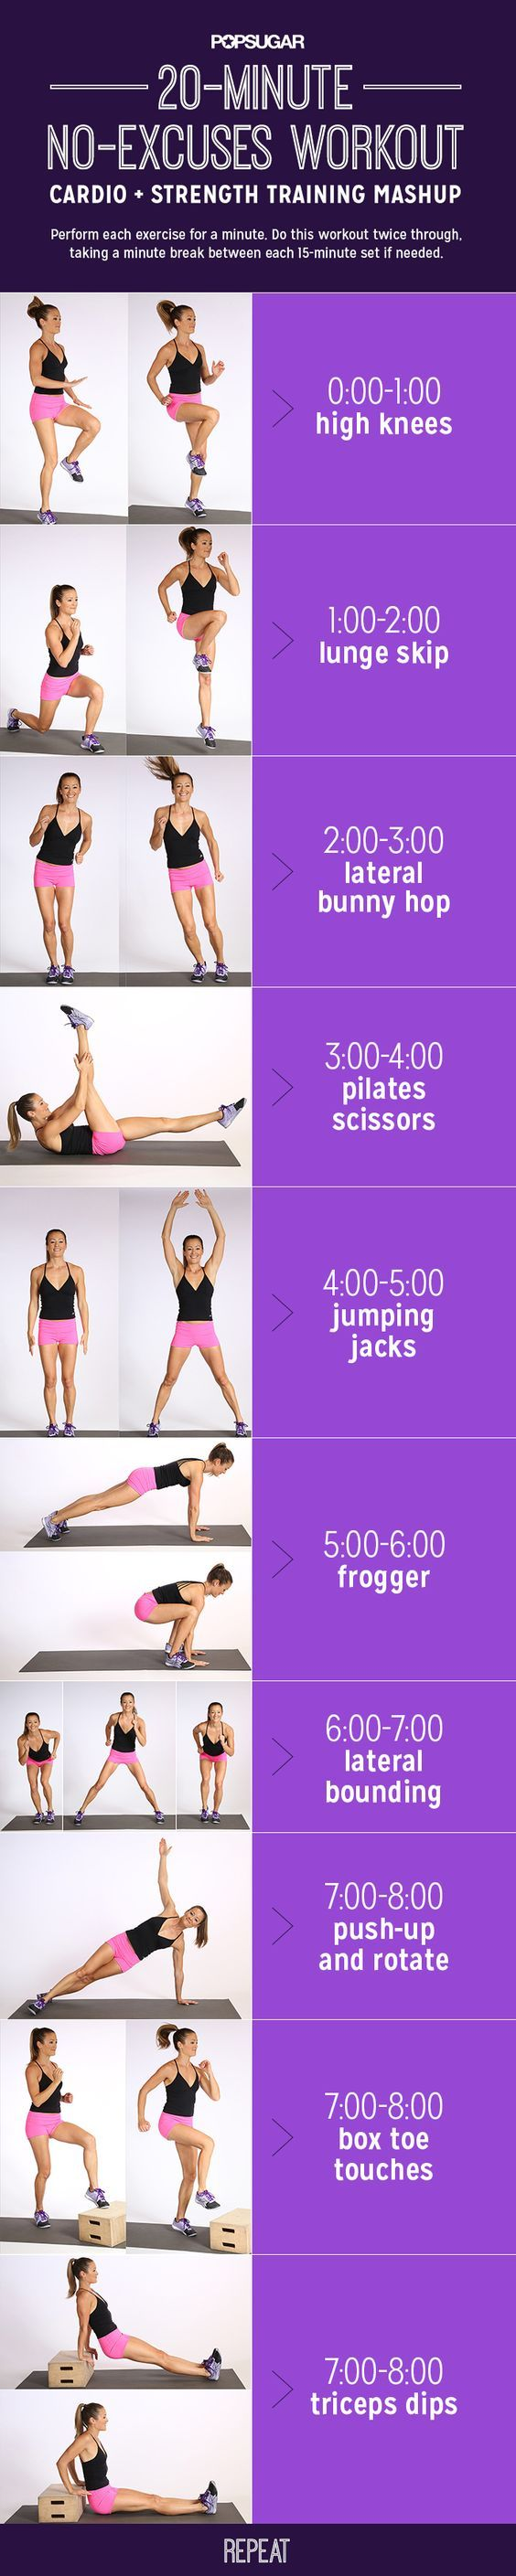 A One-and-Done Workout: Burn Calories and Build Strength. Yes, you can get your heart rate up without running. With this quick workout you don't need any equipment at all — no elliptical, no weights. Get ready to hop, skip, and jump your way to fit by doing bodyweight exercises that burn calories and tone you all over.